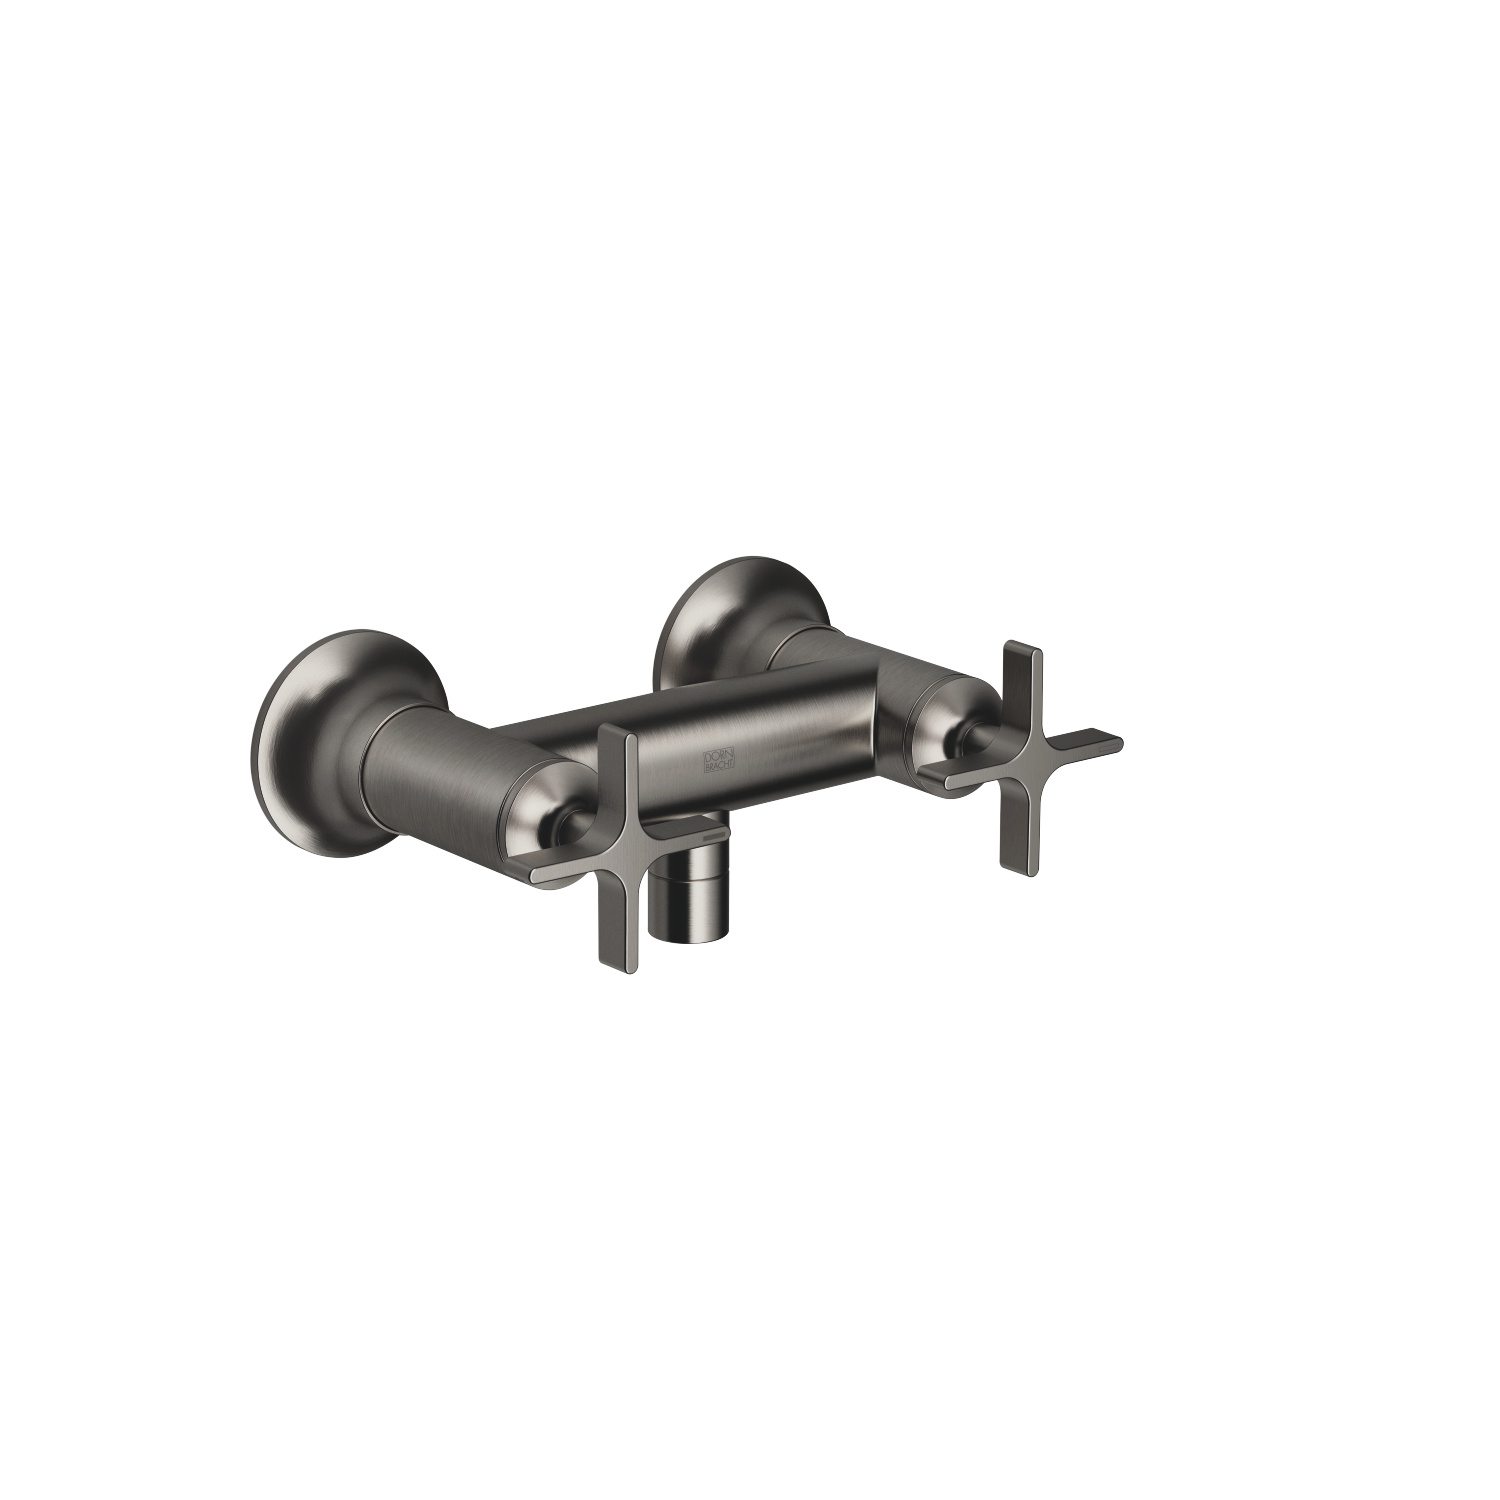 Shower mixer for wall mounting - Dark Platinum matt